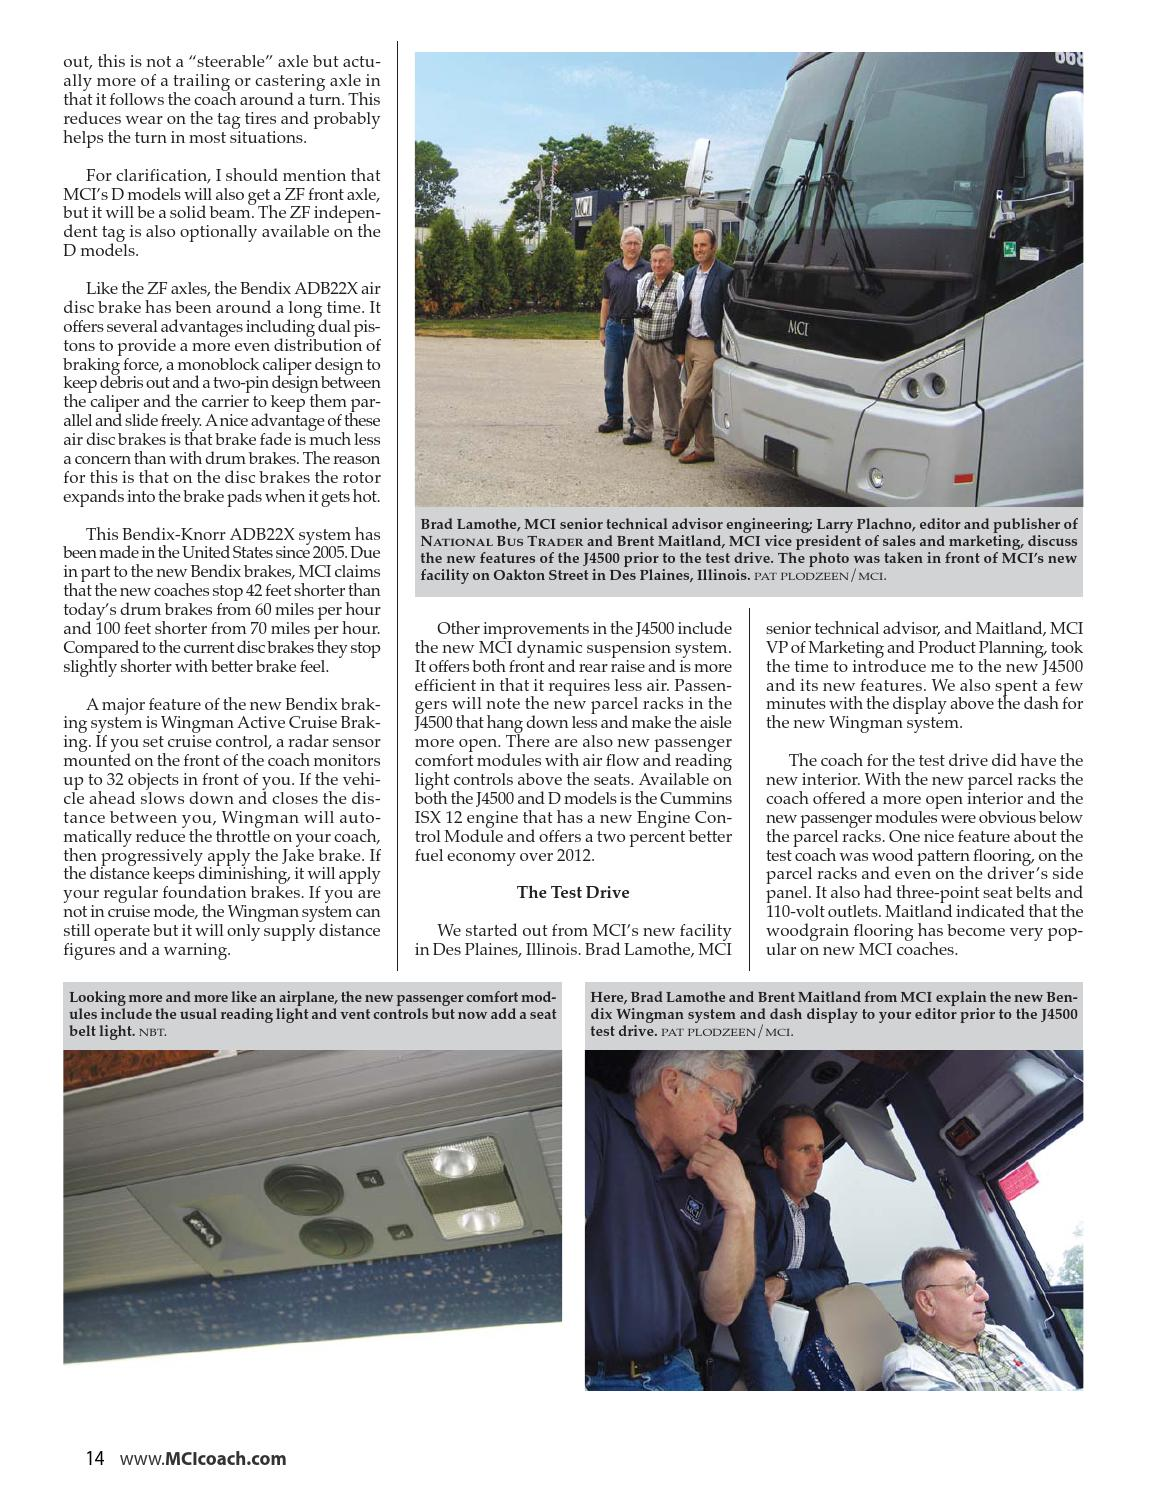 Motor Coach Industries Q1 2015 by Deliverabilities - issuu